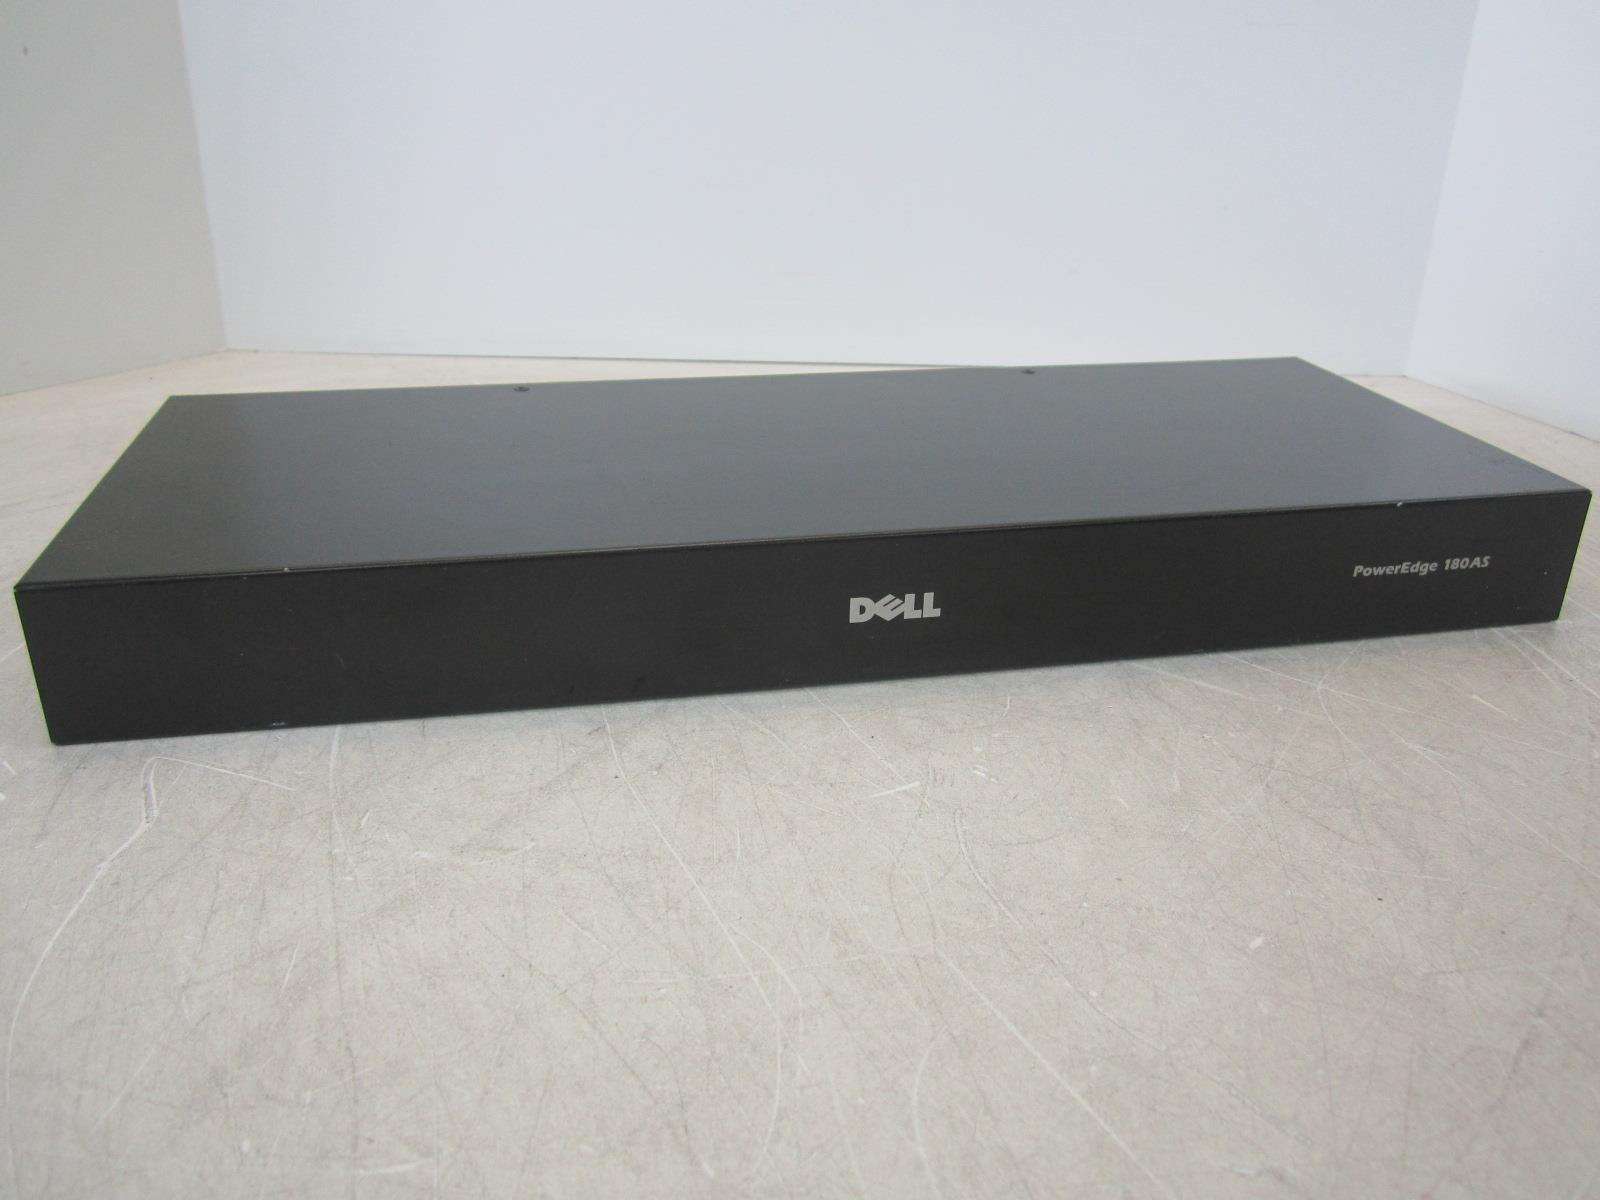 Dell Poweredge 180AS 8-Port KVM CMN 1012 Console Switch w// power cord and brack